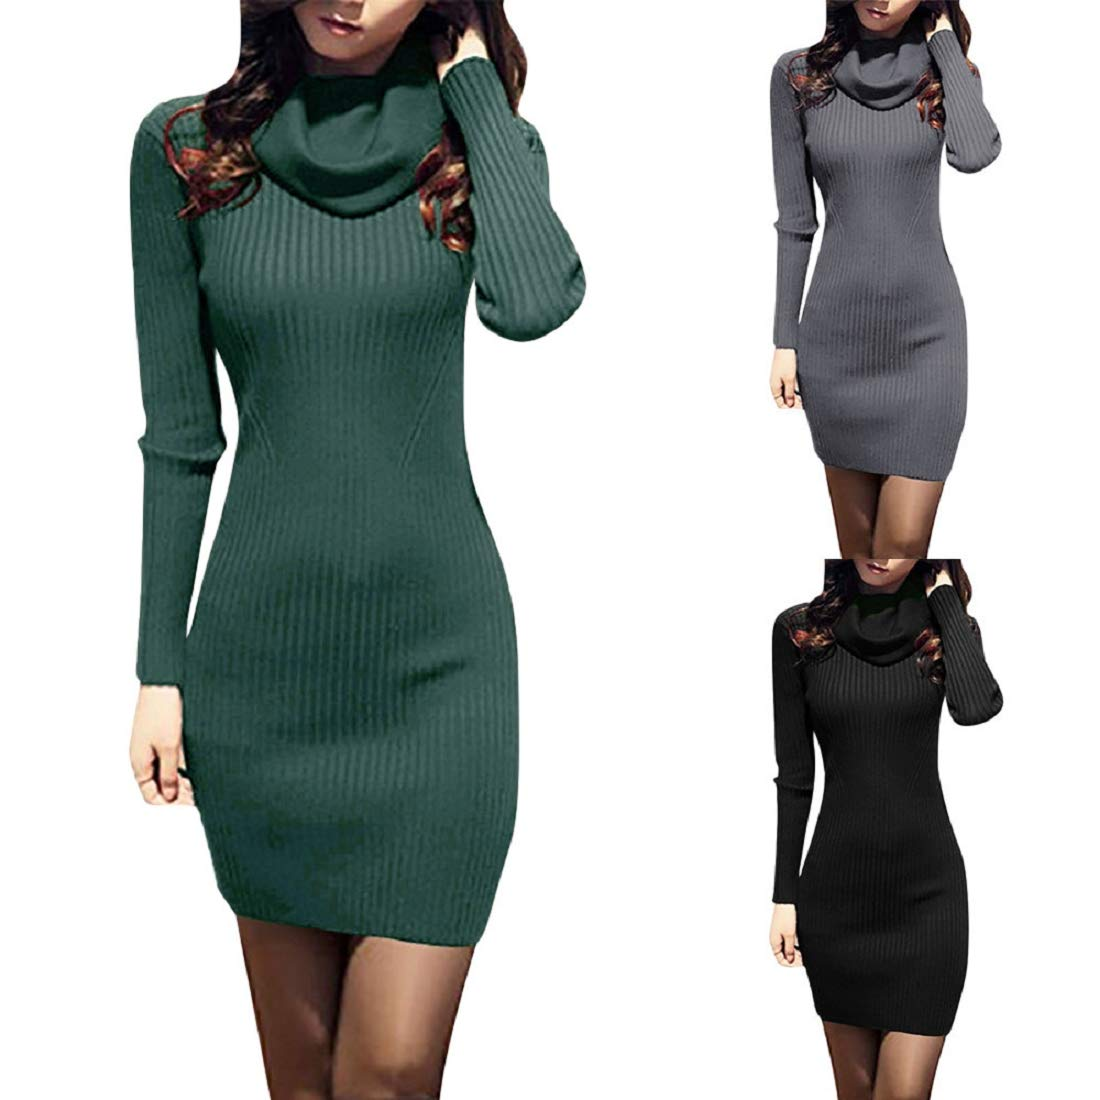 Bkolouuoe Women Cowl Neck Knit Sweater Dress Casual Long Sleeve Long Slim Fit Stretchable Elasticity Dress